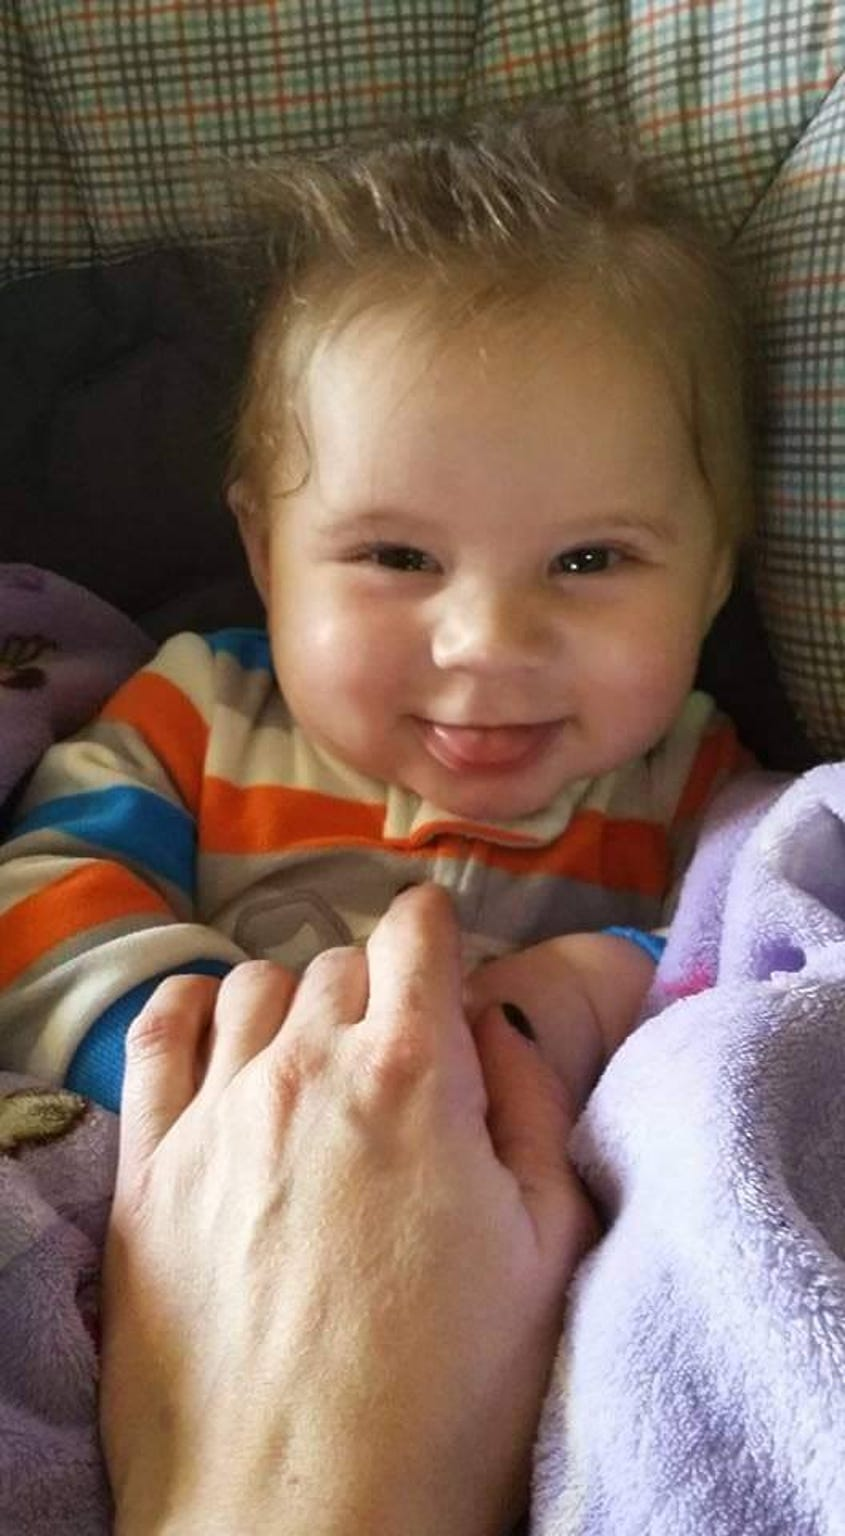 Dante Mullinix, his aunt said, was a happy baby. But he was nonverbal and had problems chewing and swallowing food. Loved ones suspect that he might've had autism — but he was not formally diagnosed with the disorder.